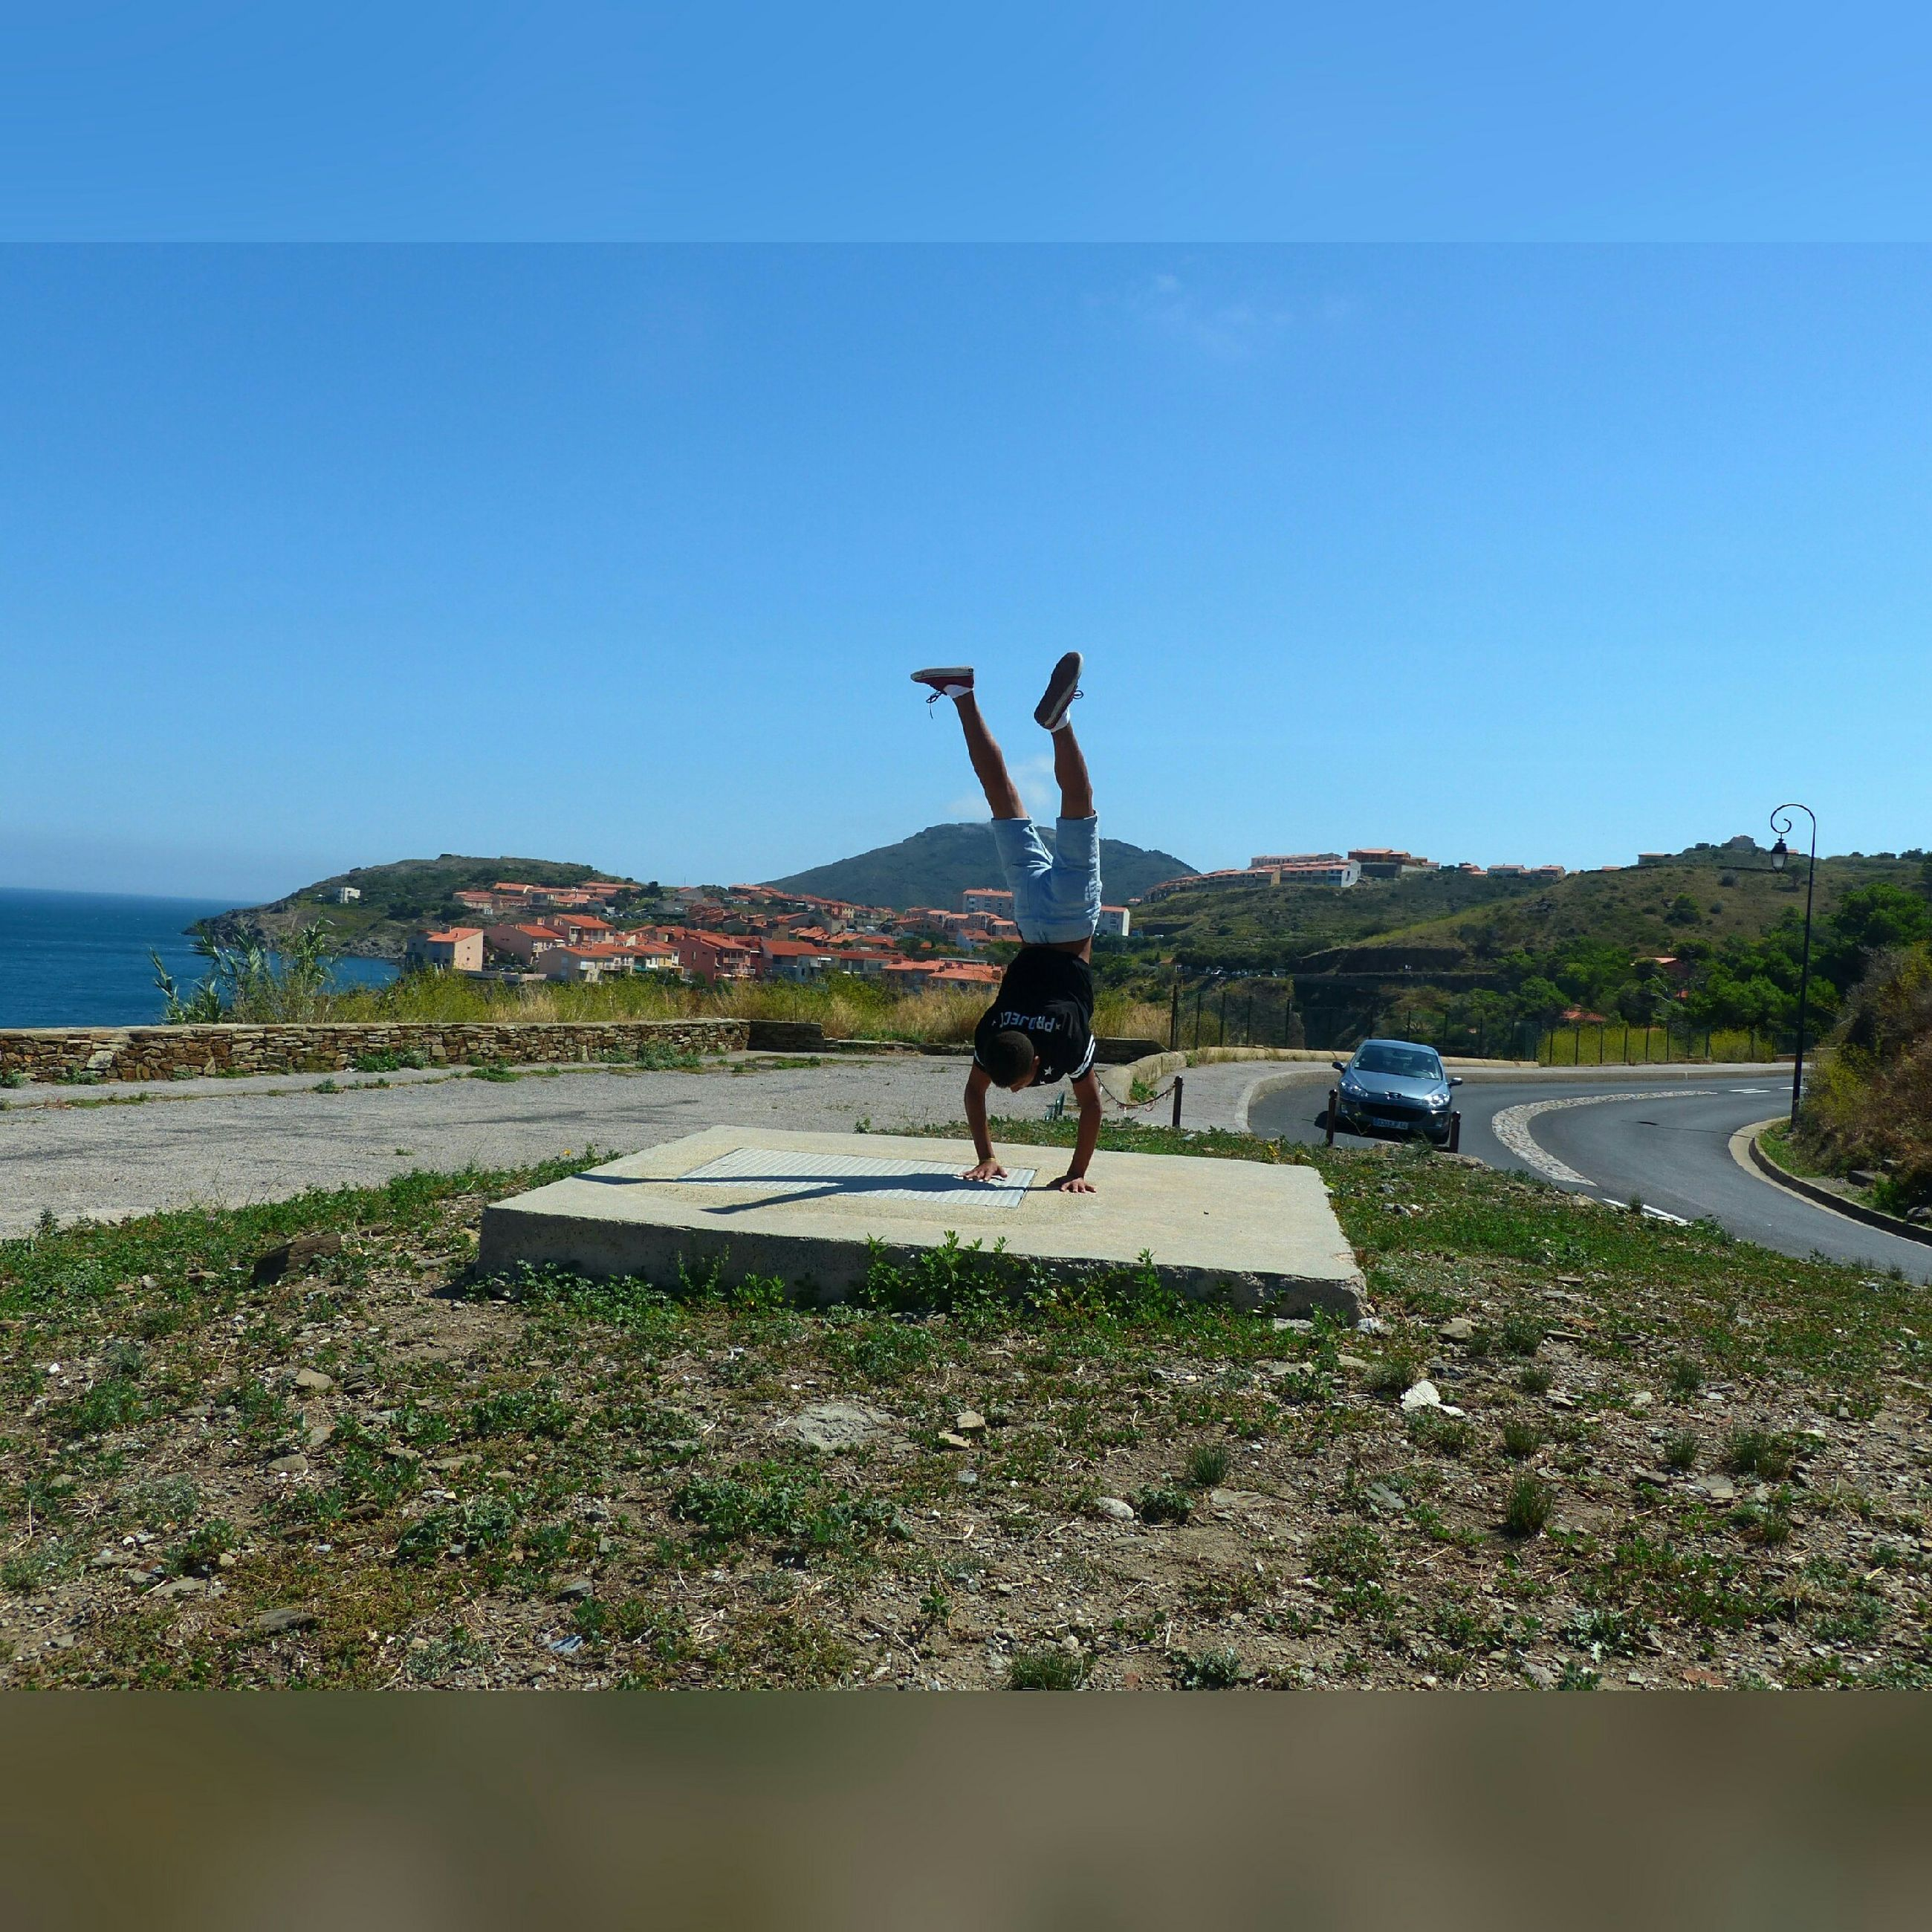 lifestyles, full length, leisure activity, mid-air, clear sky, jumping, men, copy space, blue, water, enjoyment, motion, sport, fun, sky, arms raised, person, sunlight